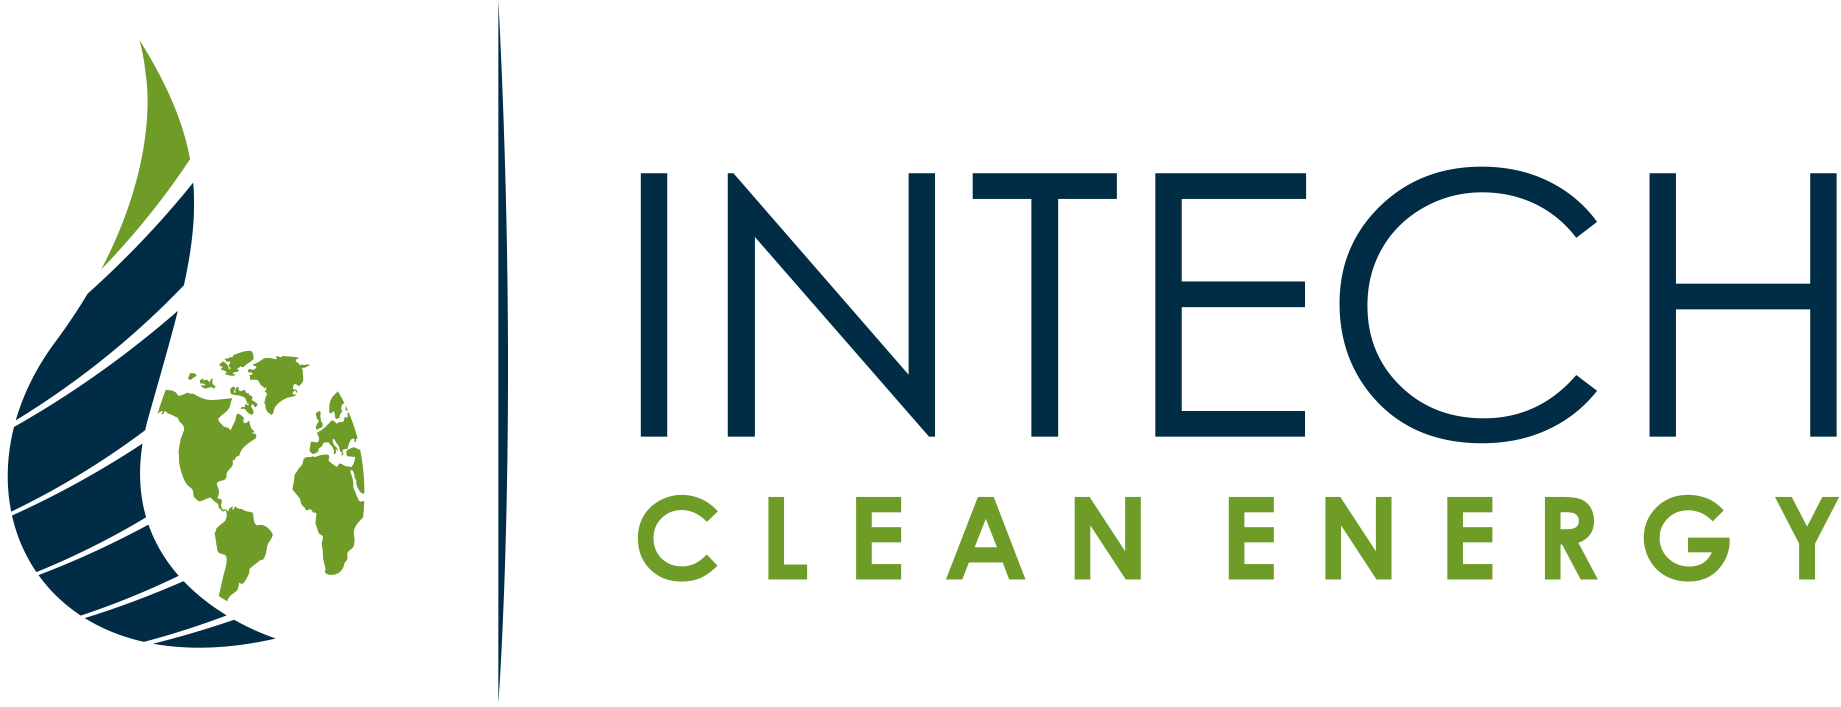 Intech Clean Energy Australia